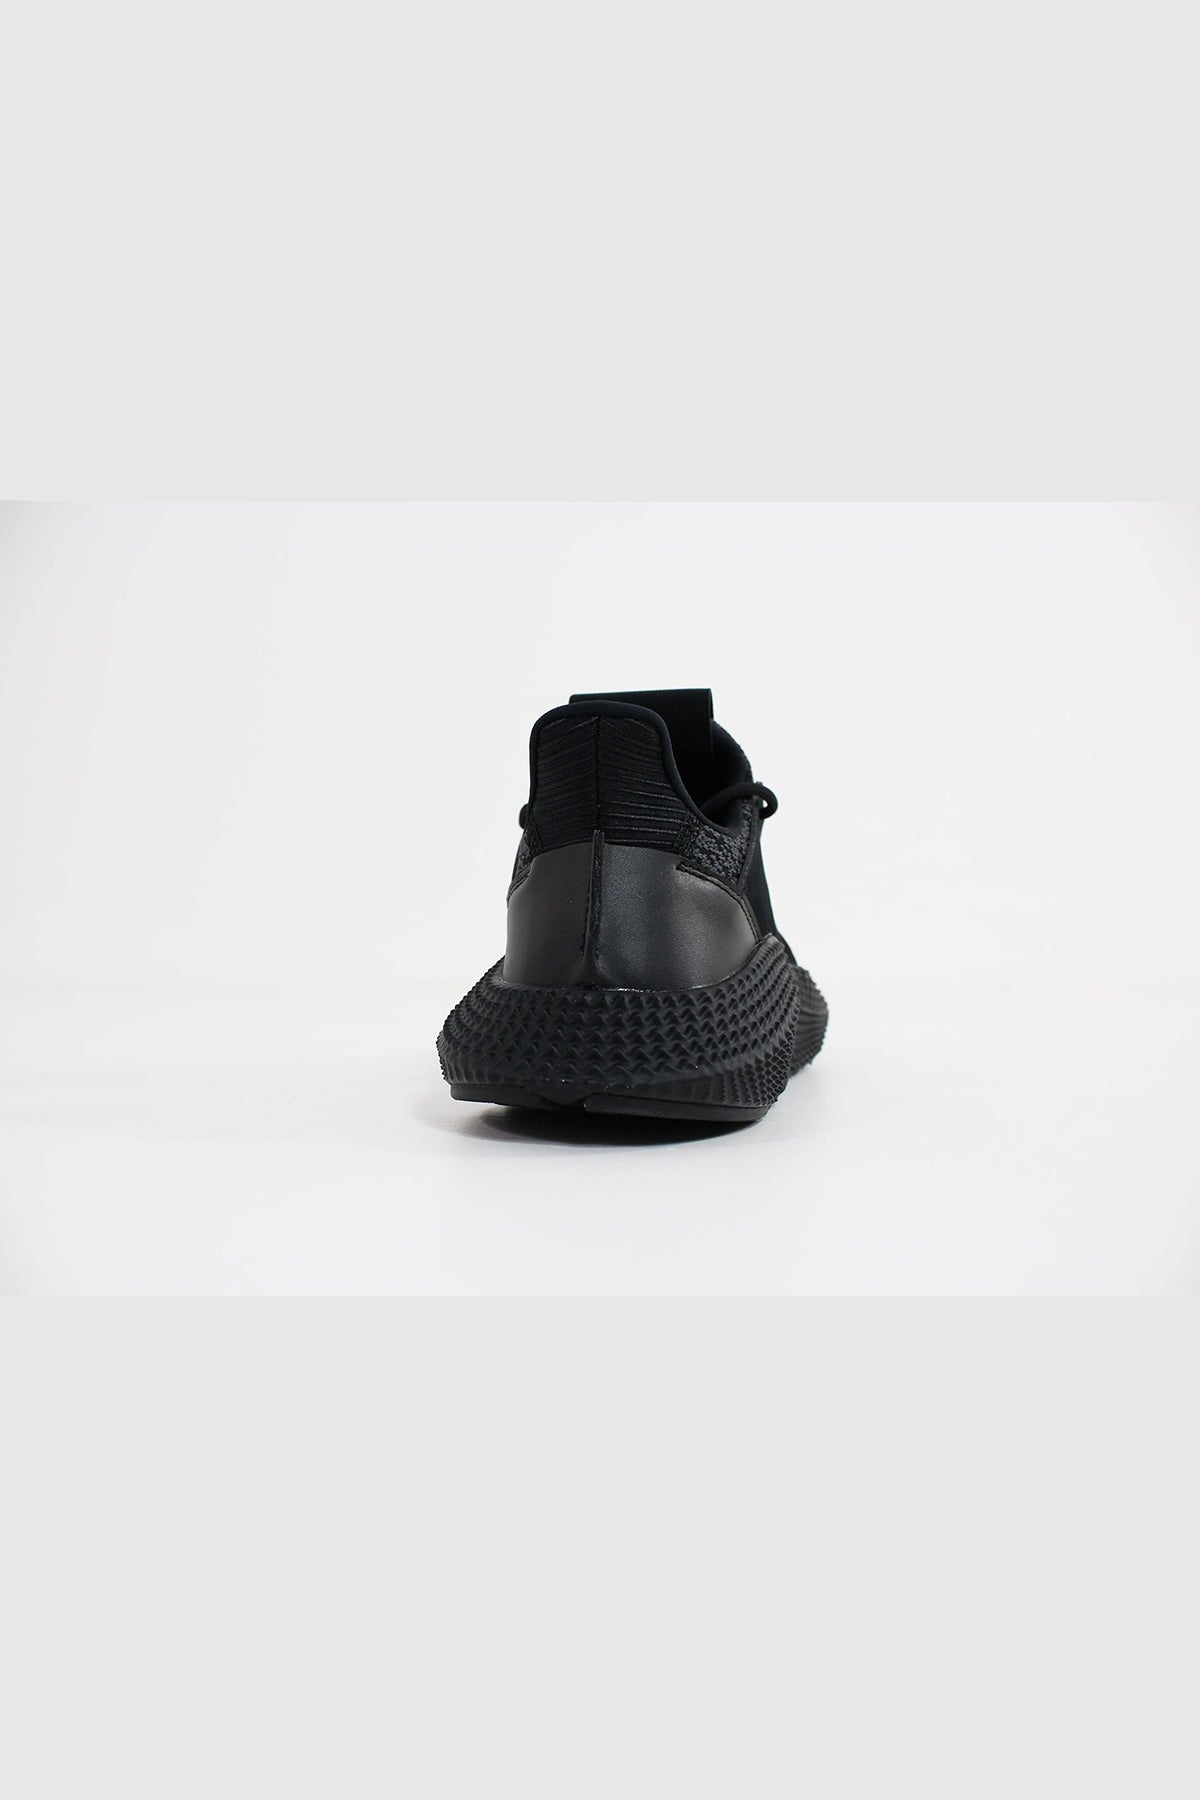 Adidas - Prophere (Core Black/ Core Black/ Solar Red) CQ2126